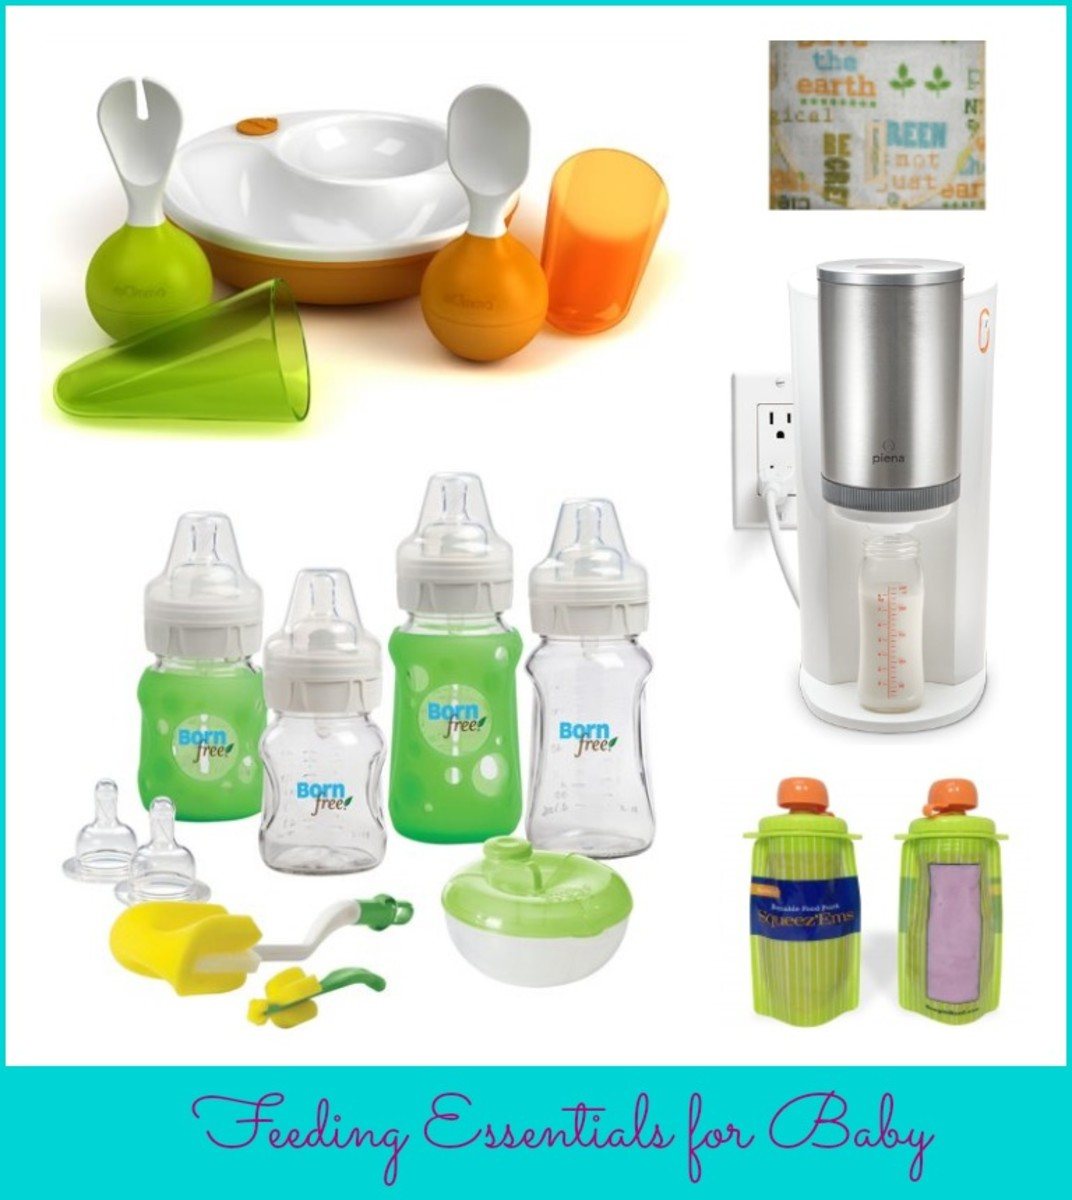 mOmma, piena, squeez'Ems, snack taxi, born free glass bottles, divided plate